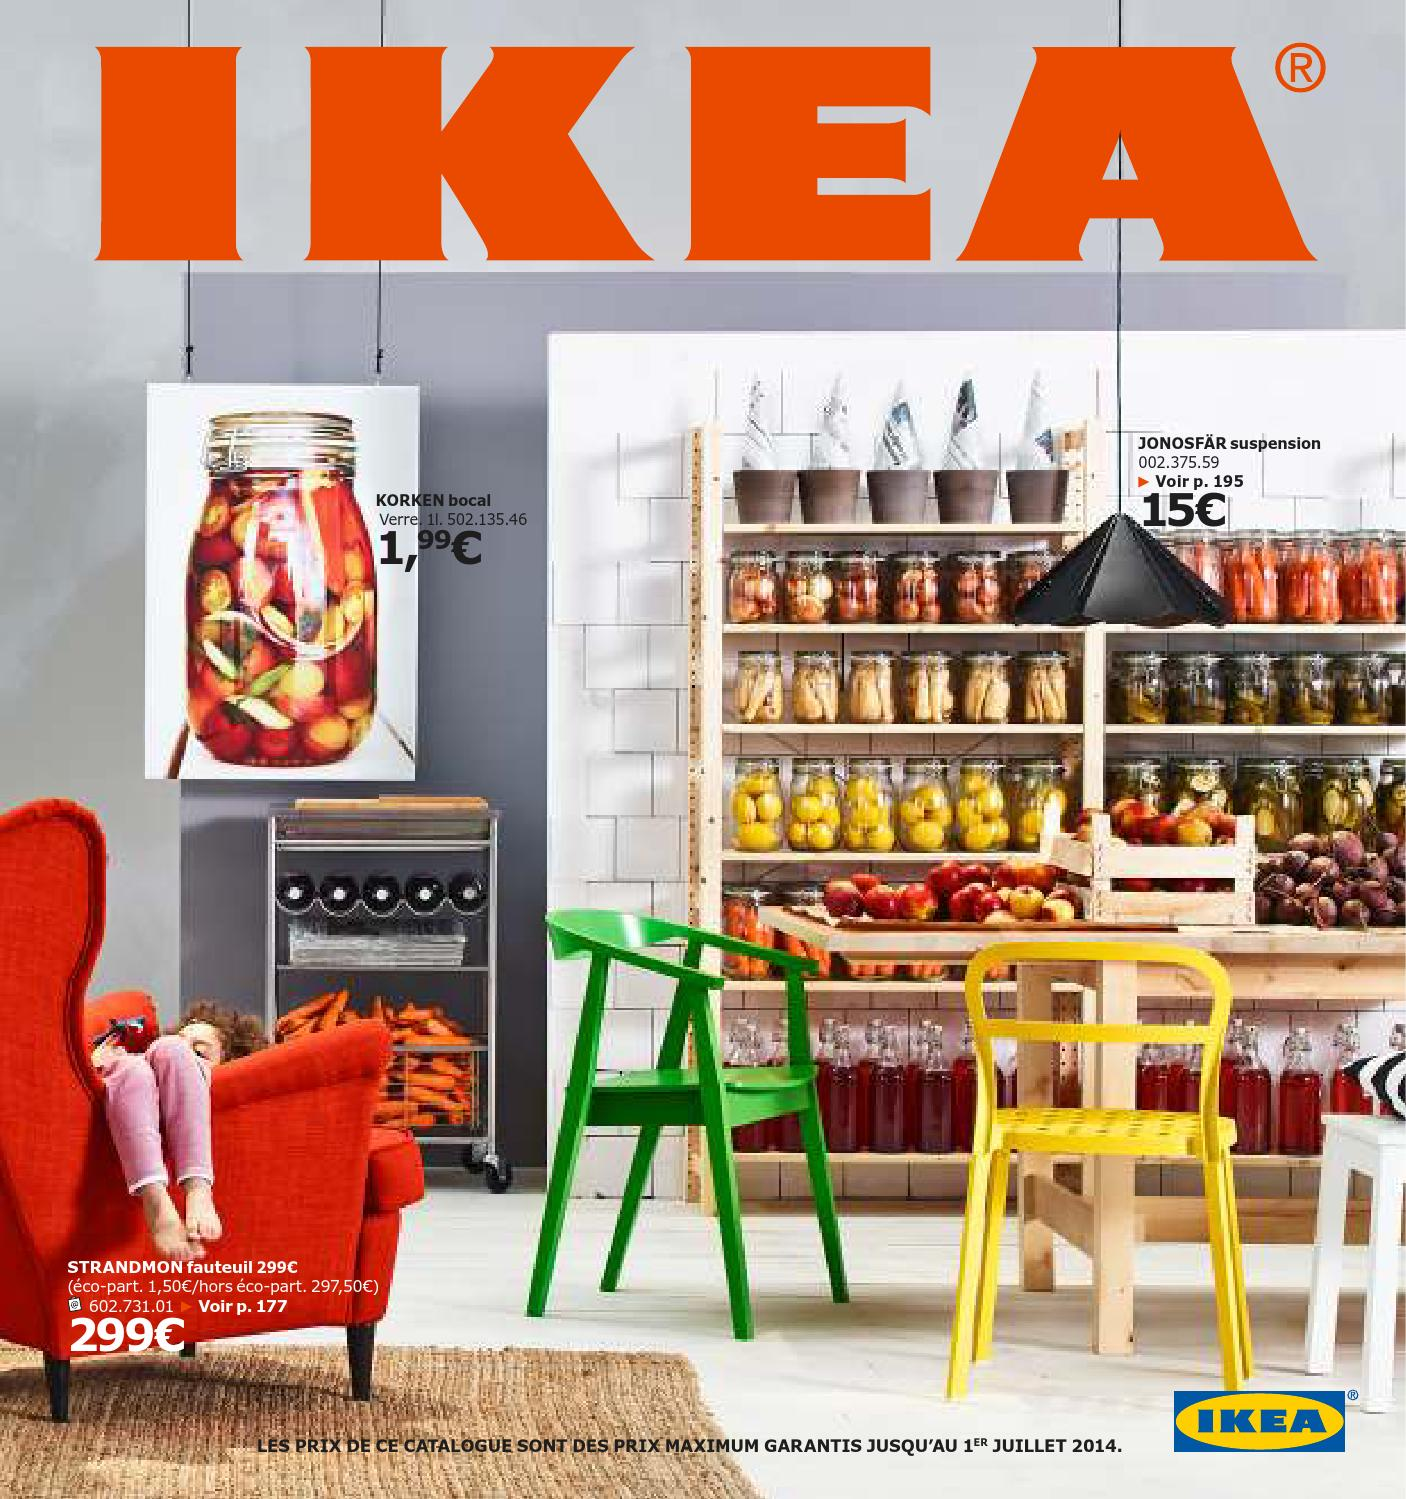 Plateau Tournant Pour Epices Ikea Ikea France Catalogue 2013 2014 By Promocatalogues Issuu